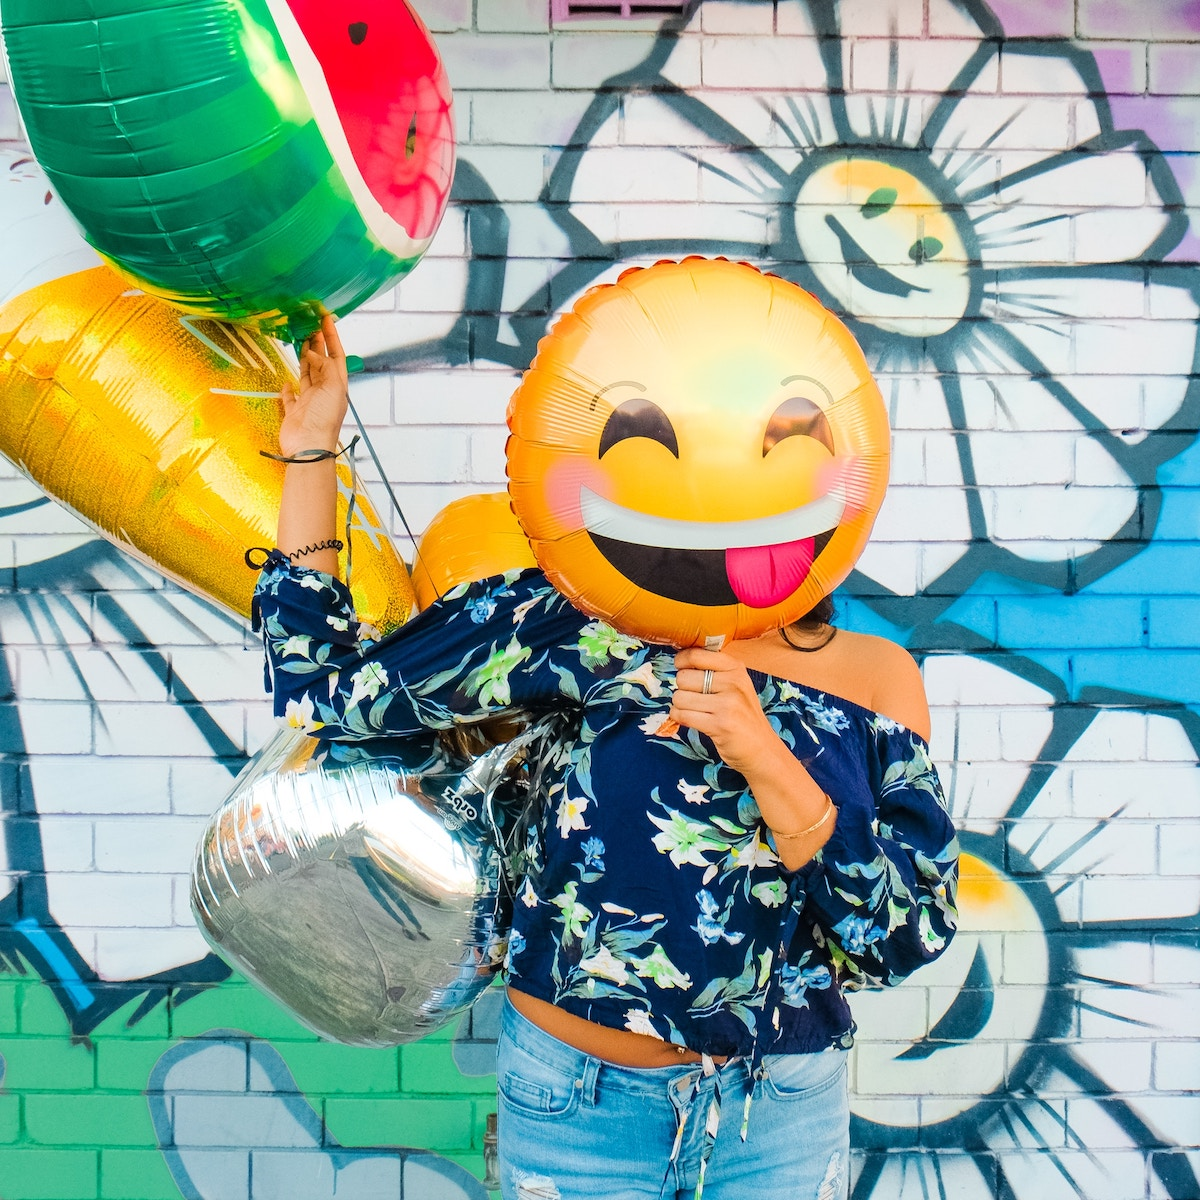 Best Instagram Bio Ideas (with emojis!)